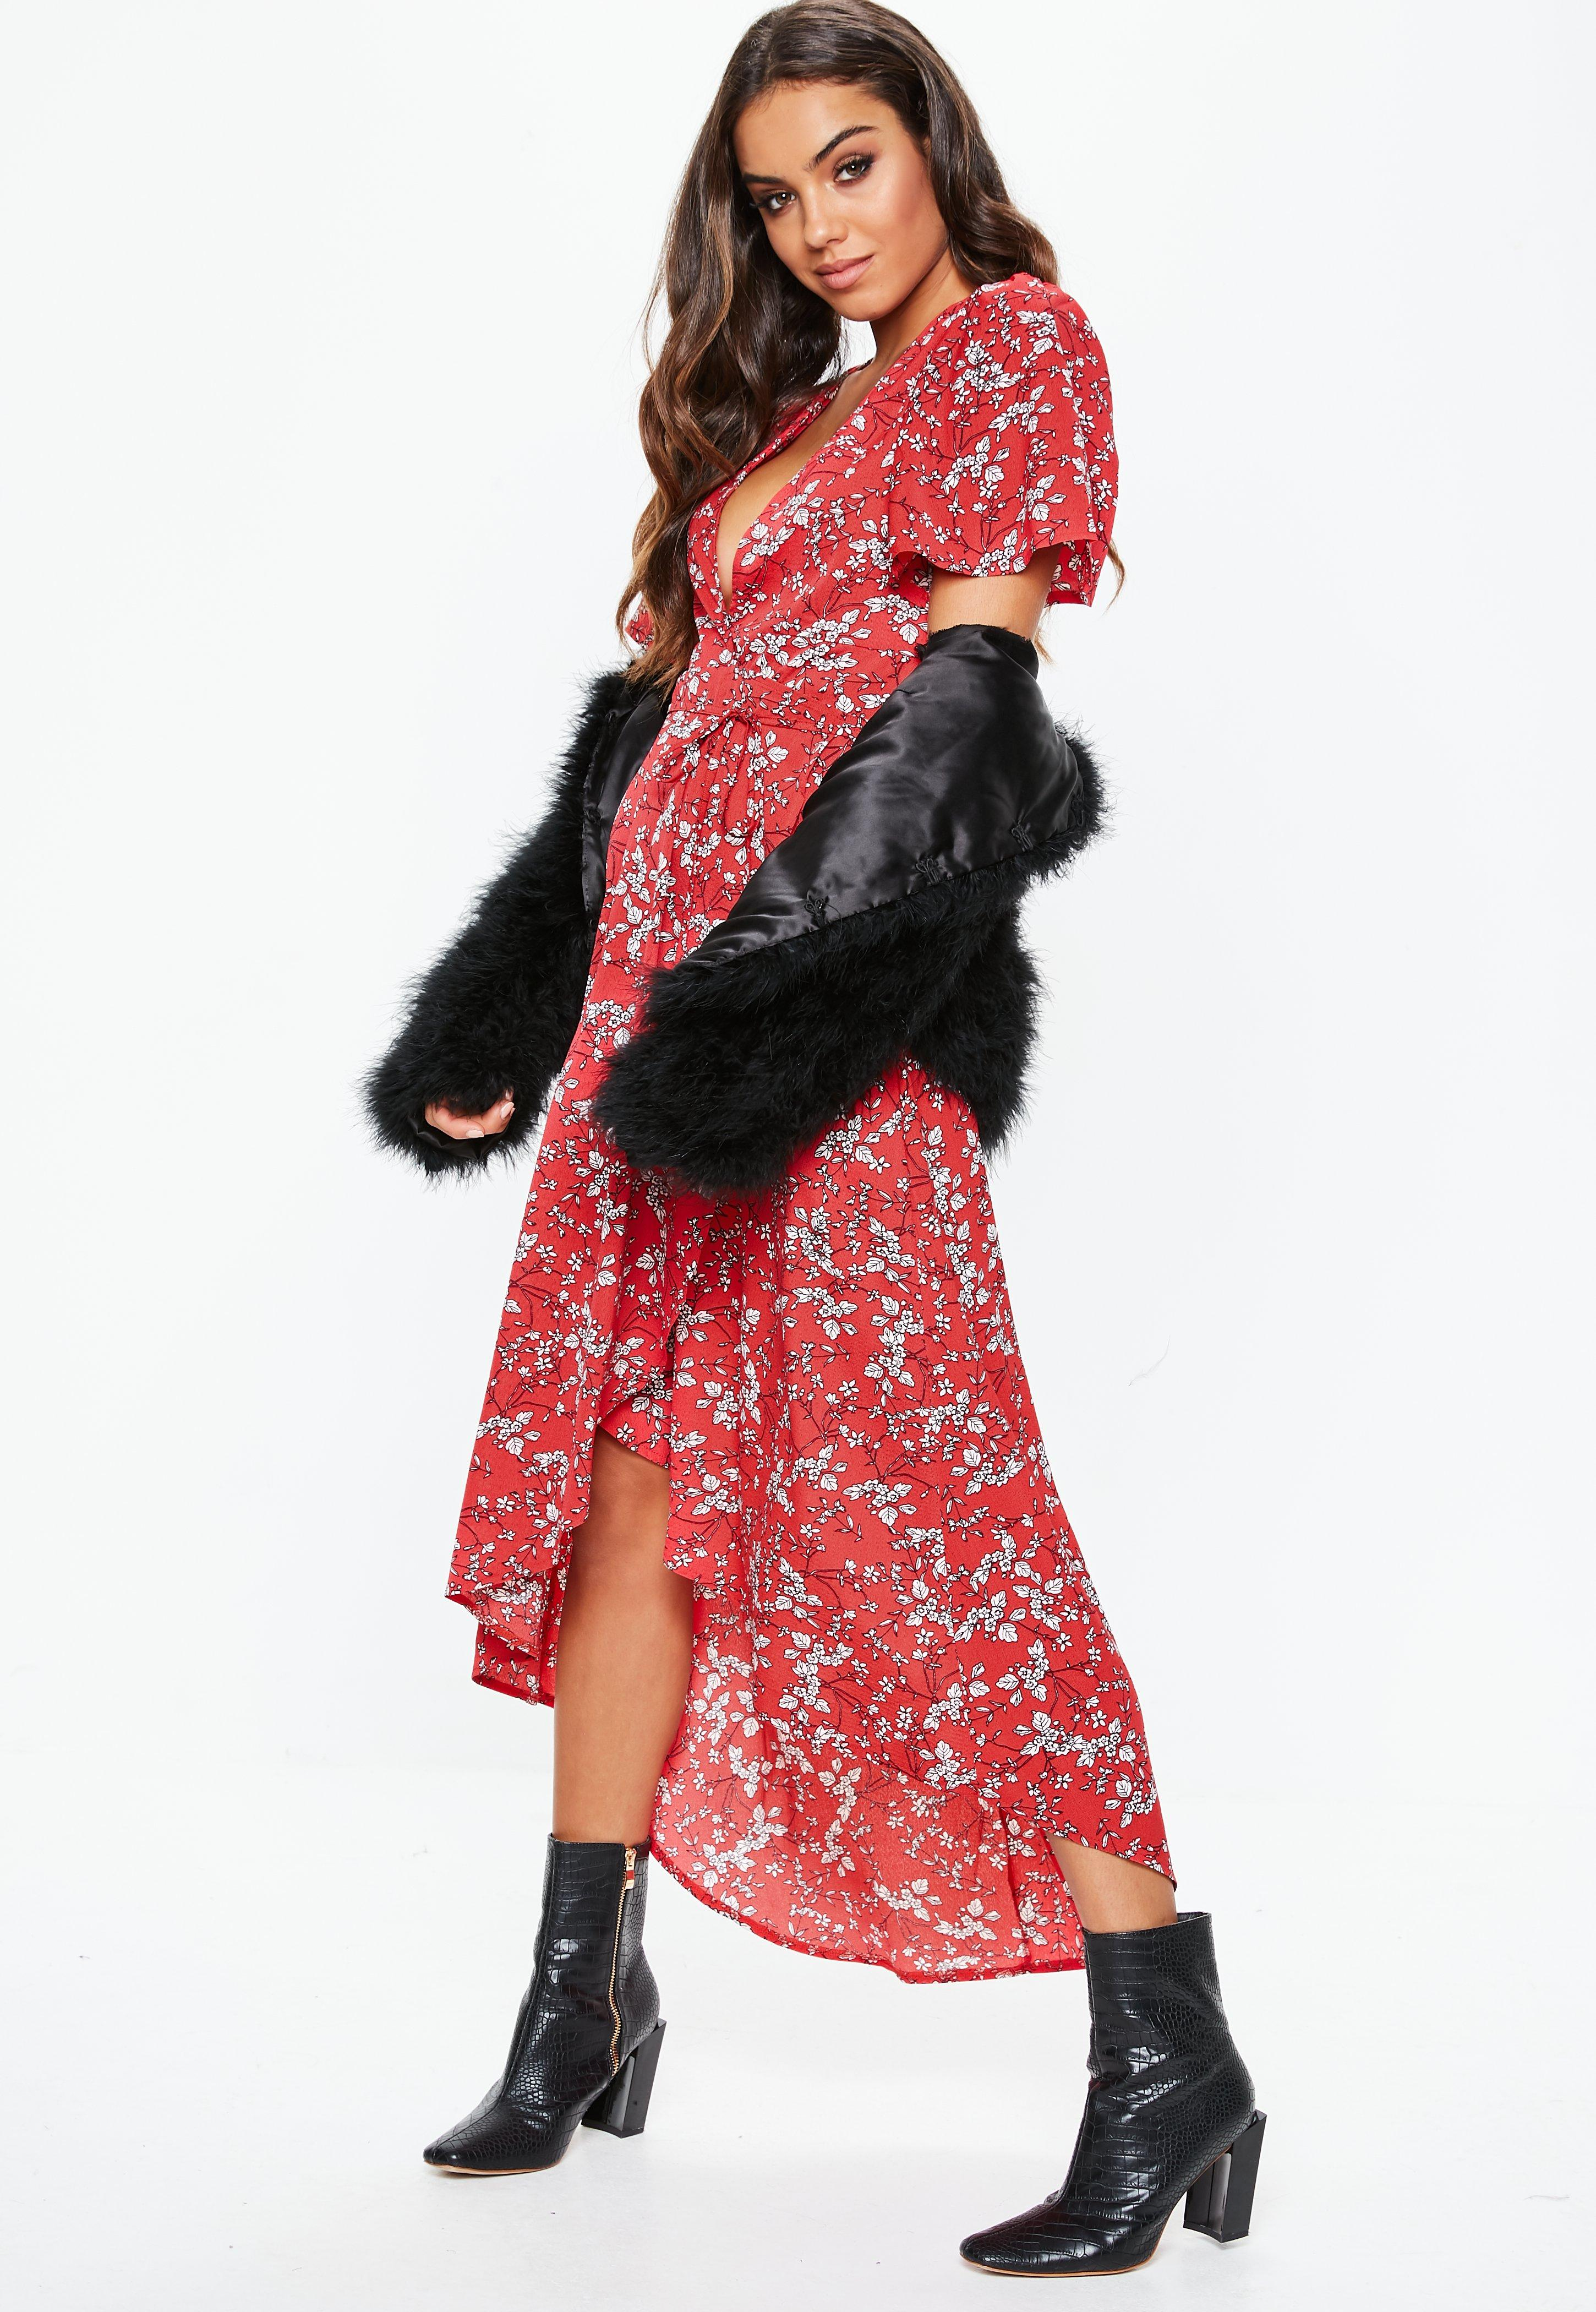 Vestidos para ceremonias | Looks ocasiones especiales - Missguided